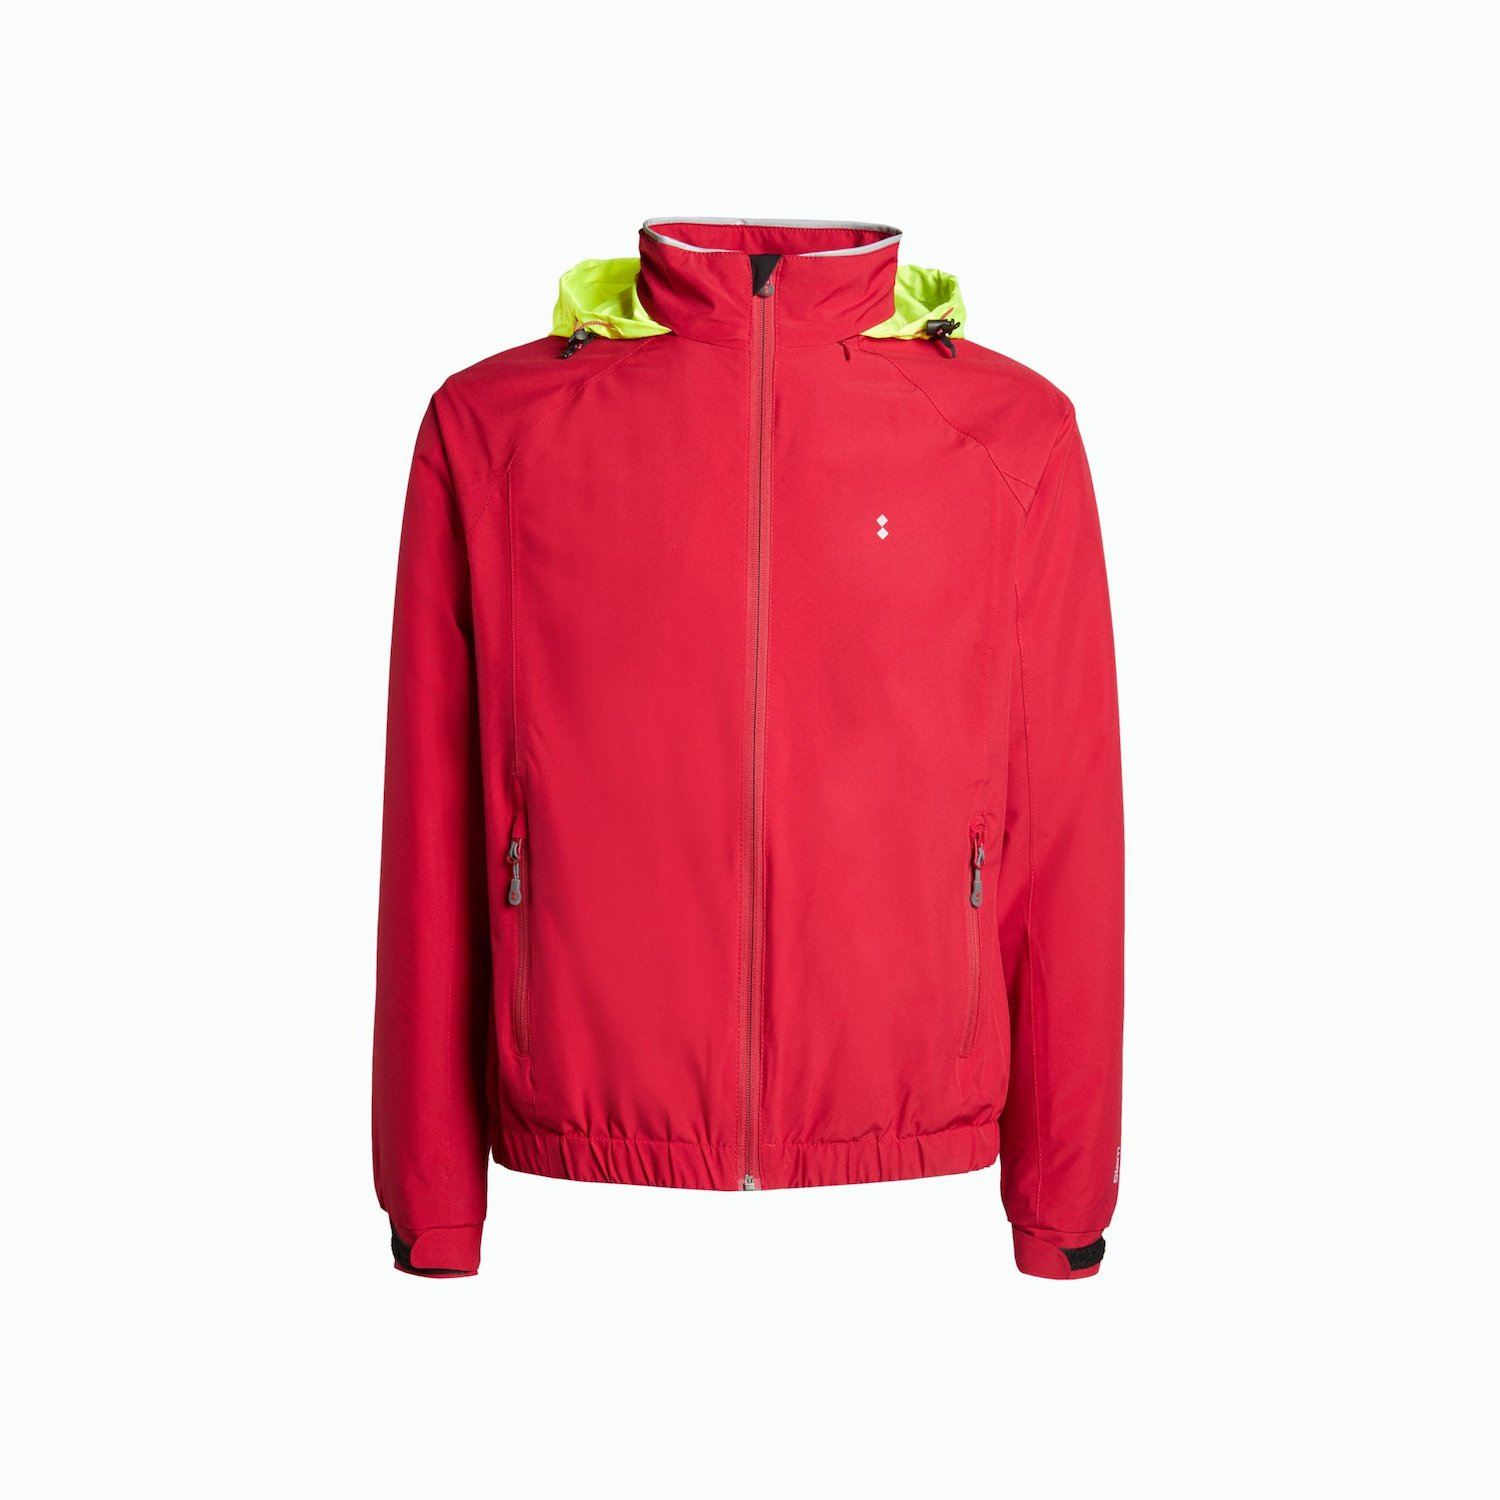 Jacke Winter Siffert - Chili Rot